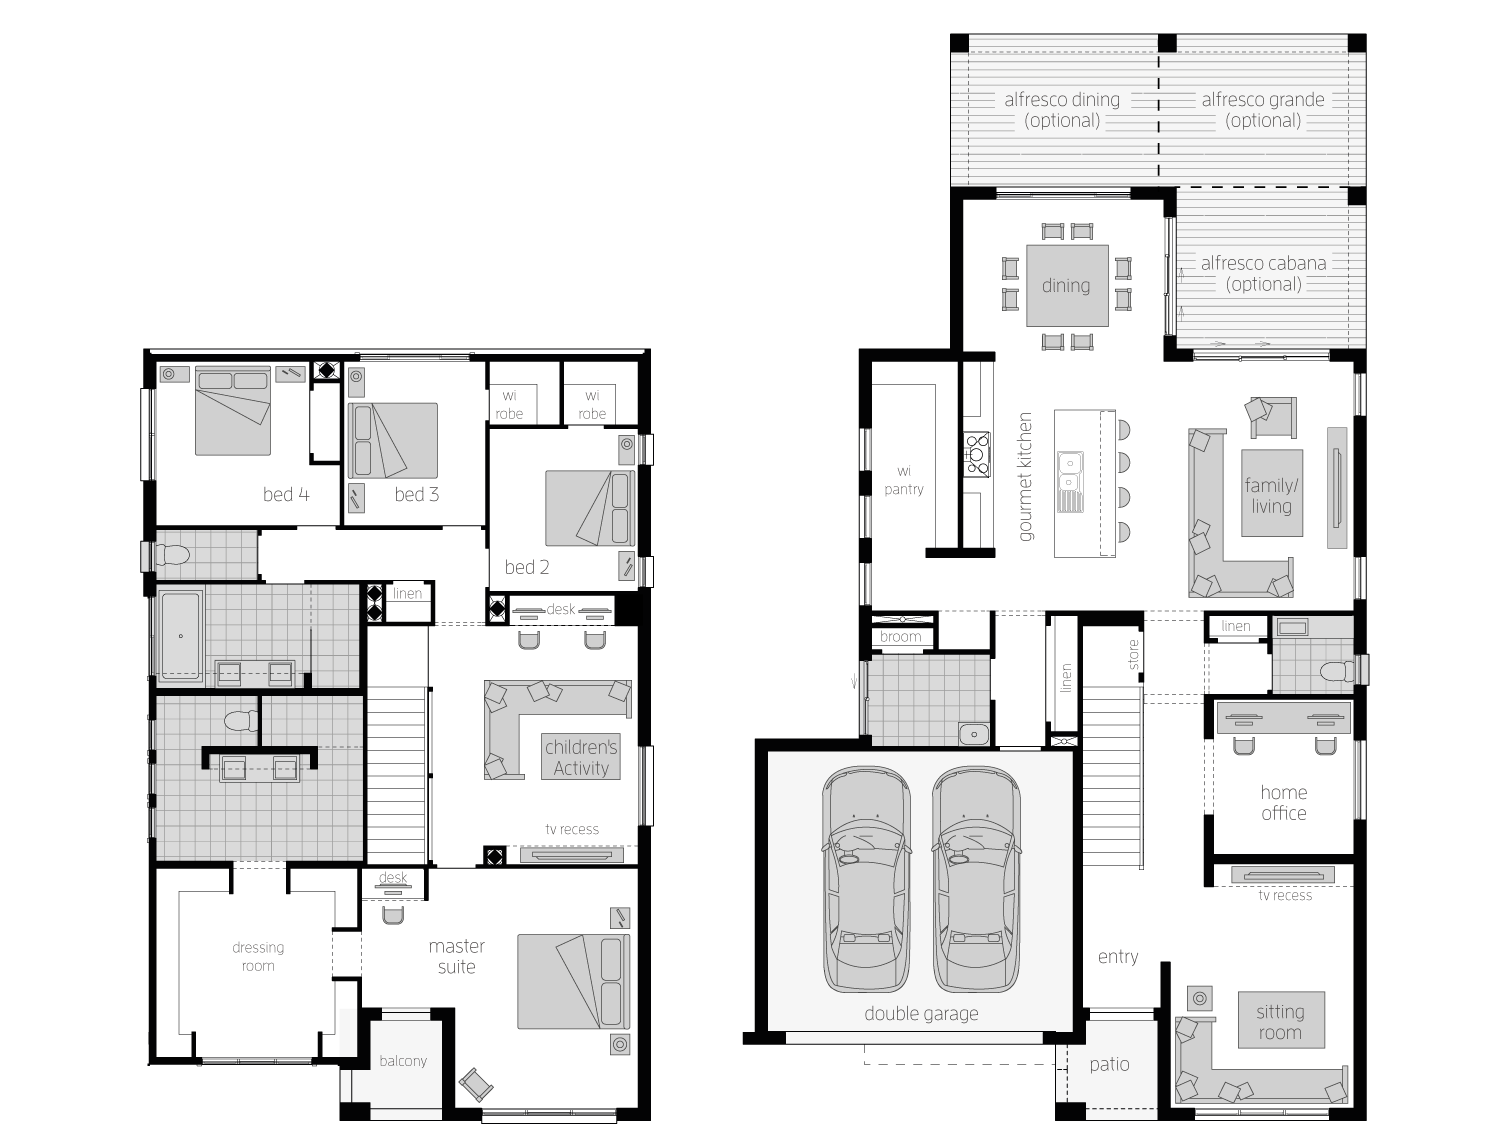 Floor Plan - Metropolitan35 - Two Storey Home - McDonald Jones